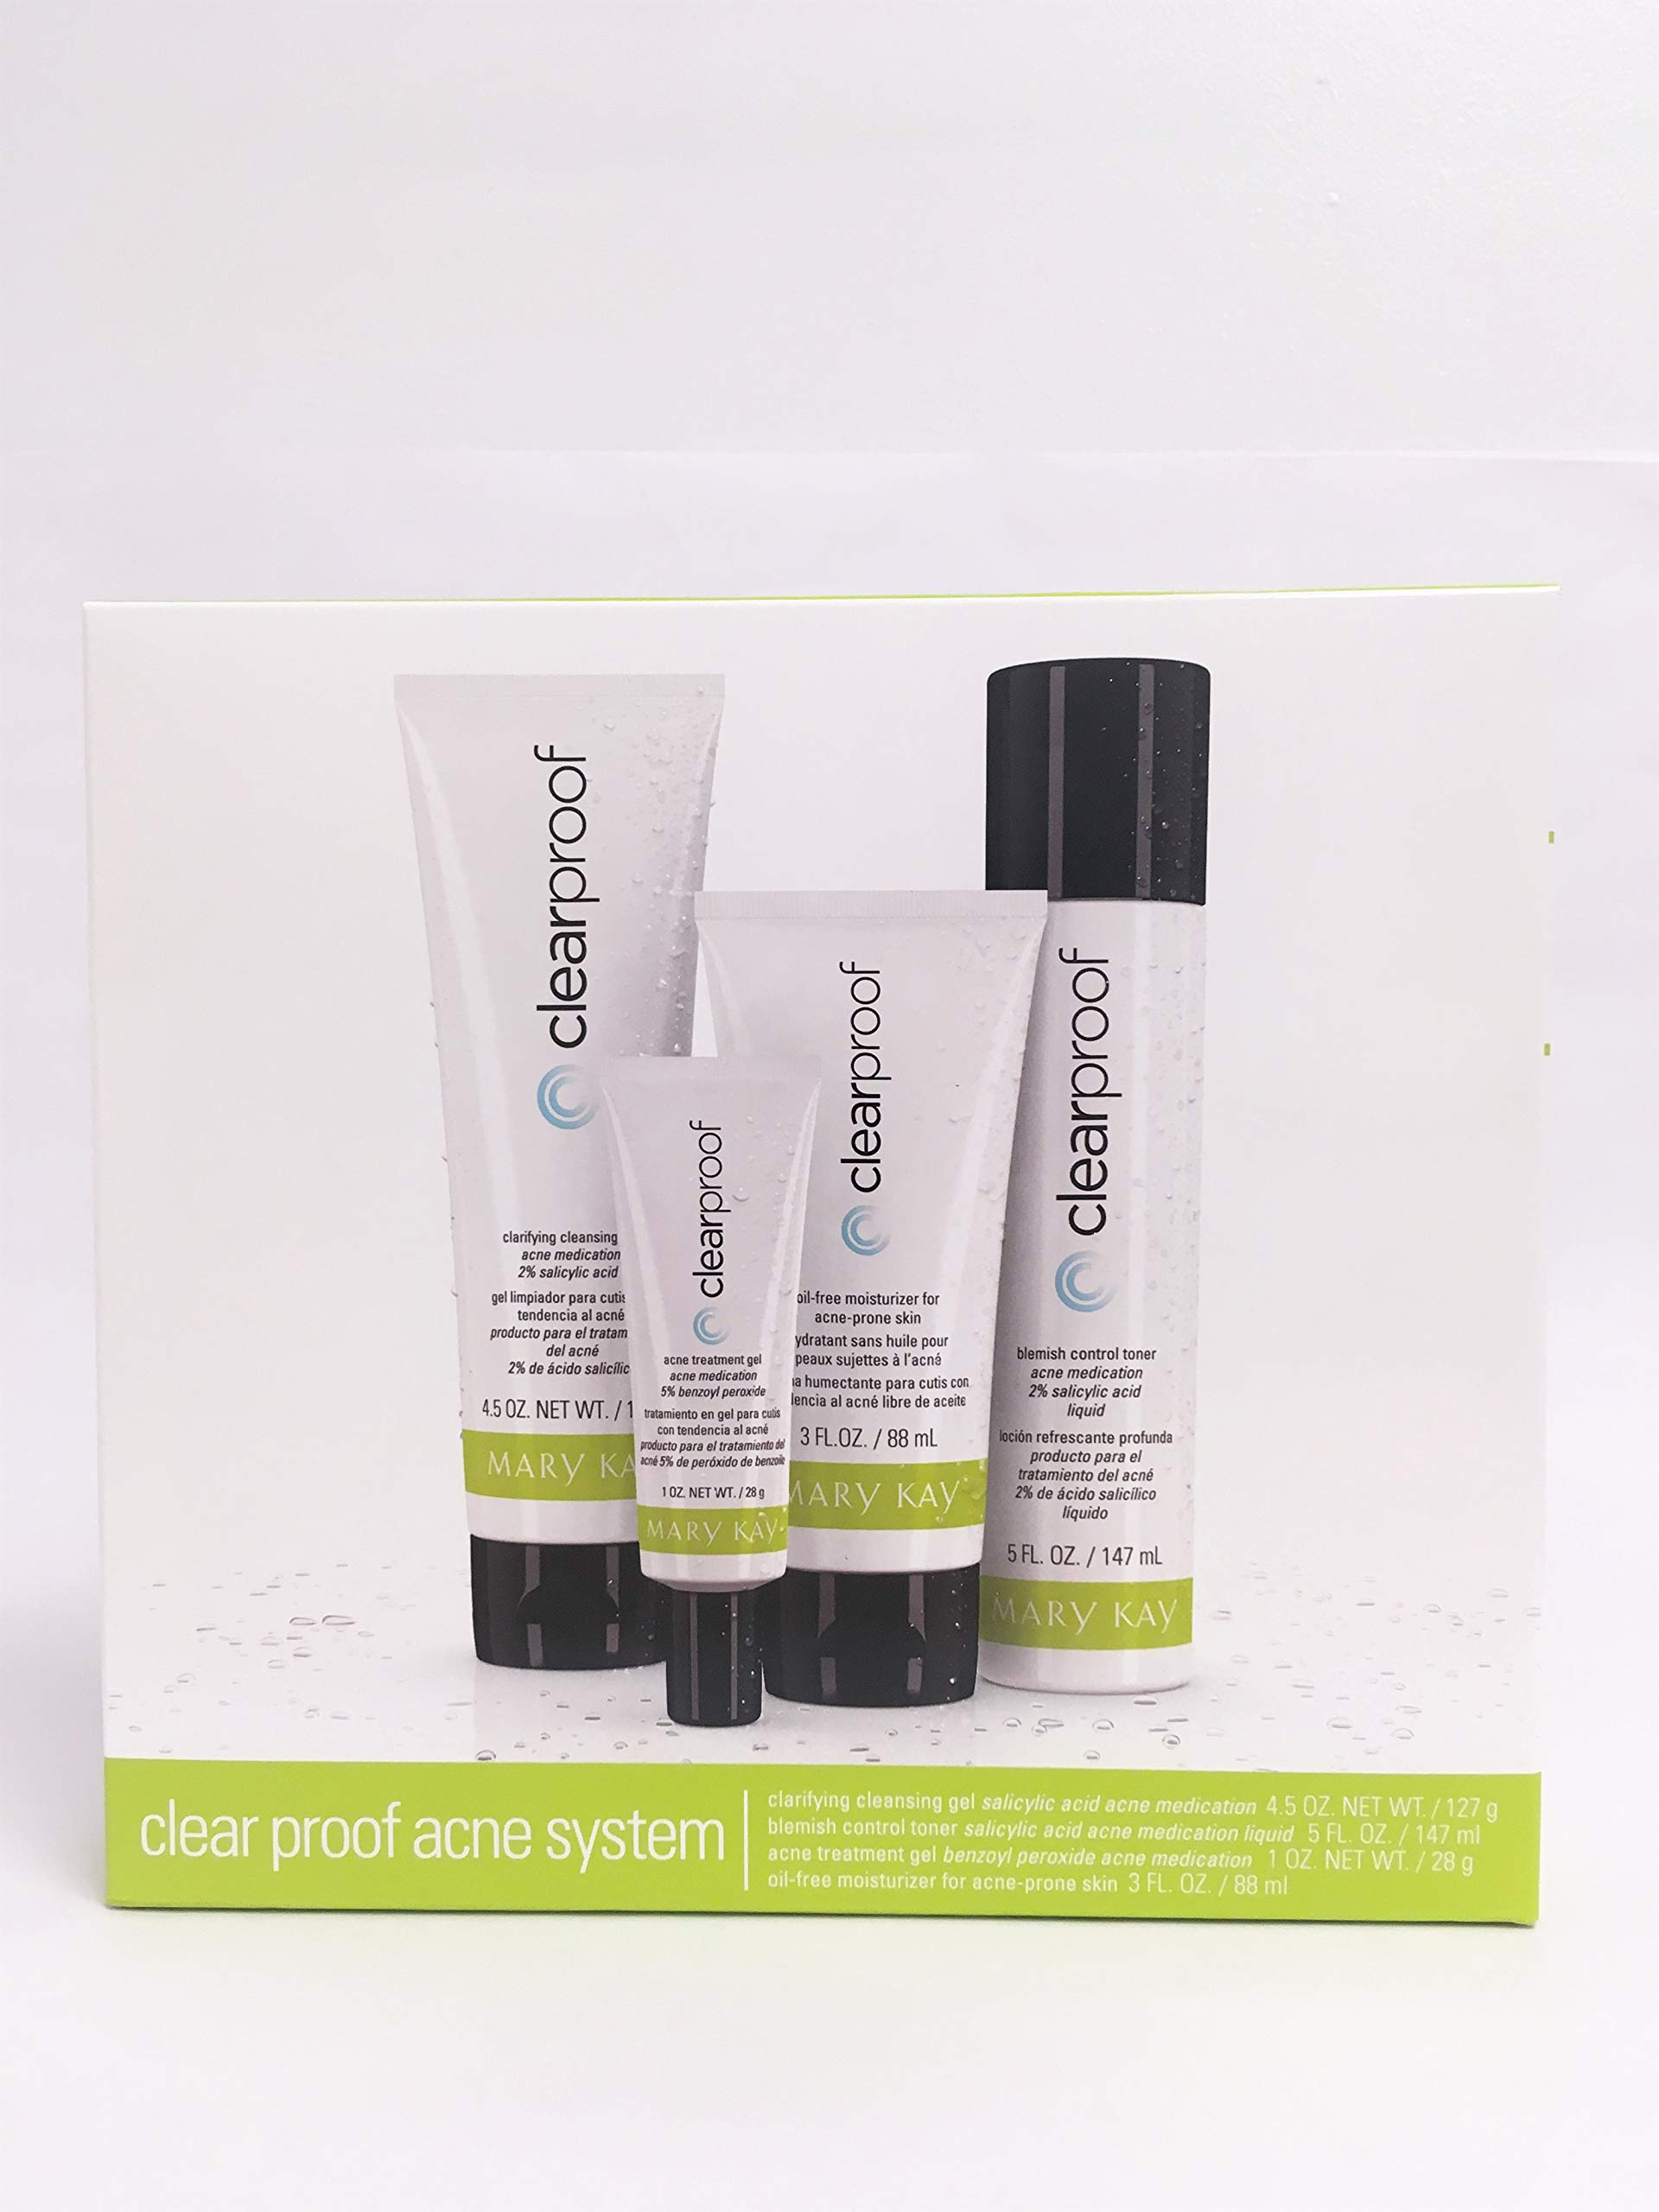 Mary Kay Clear Proof Acne System by Clear Proof via Mark Kay